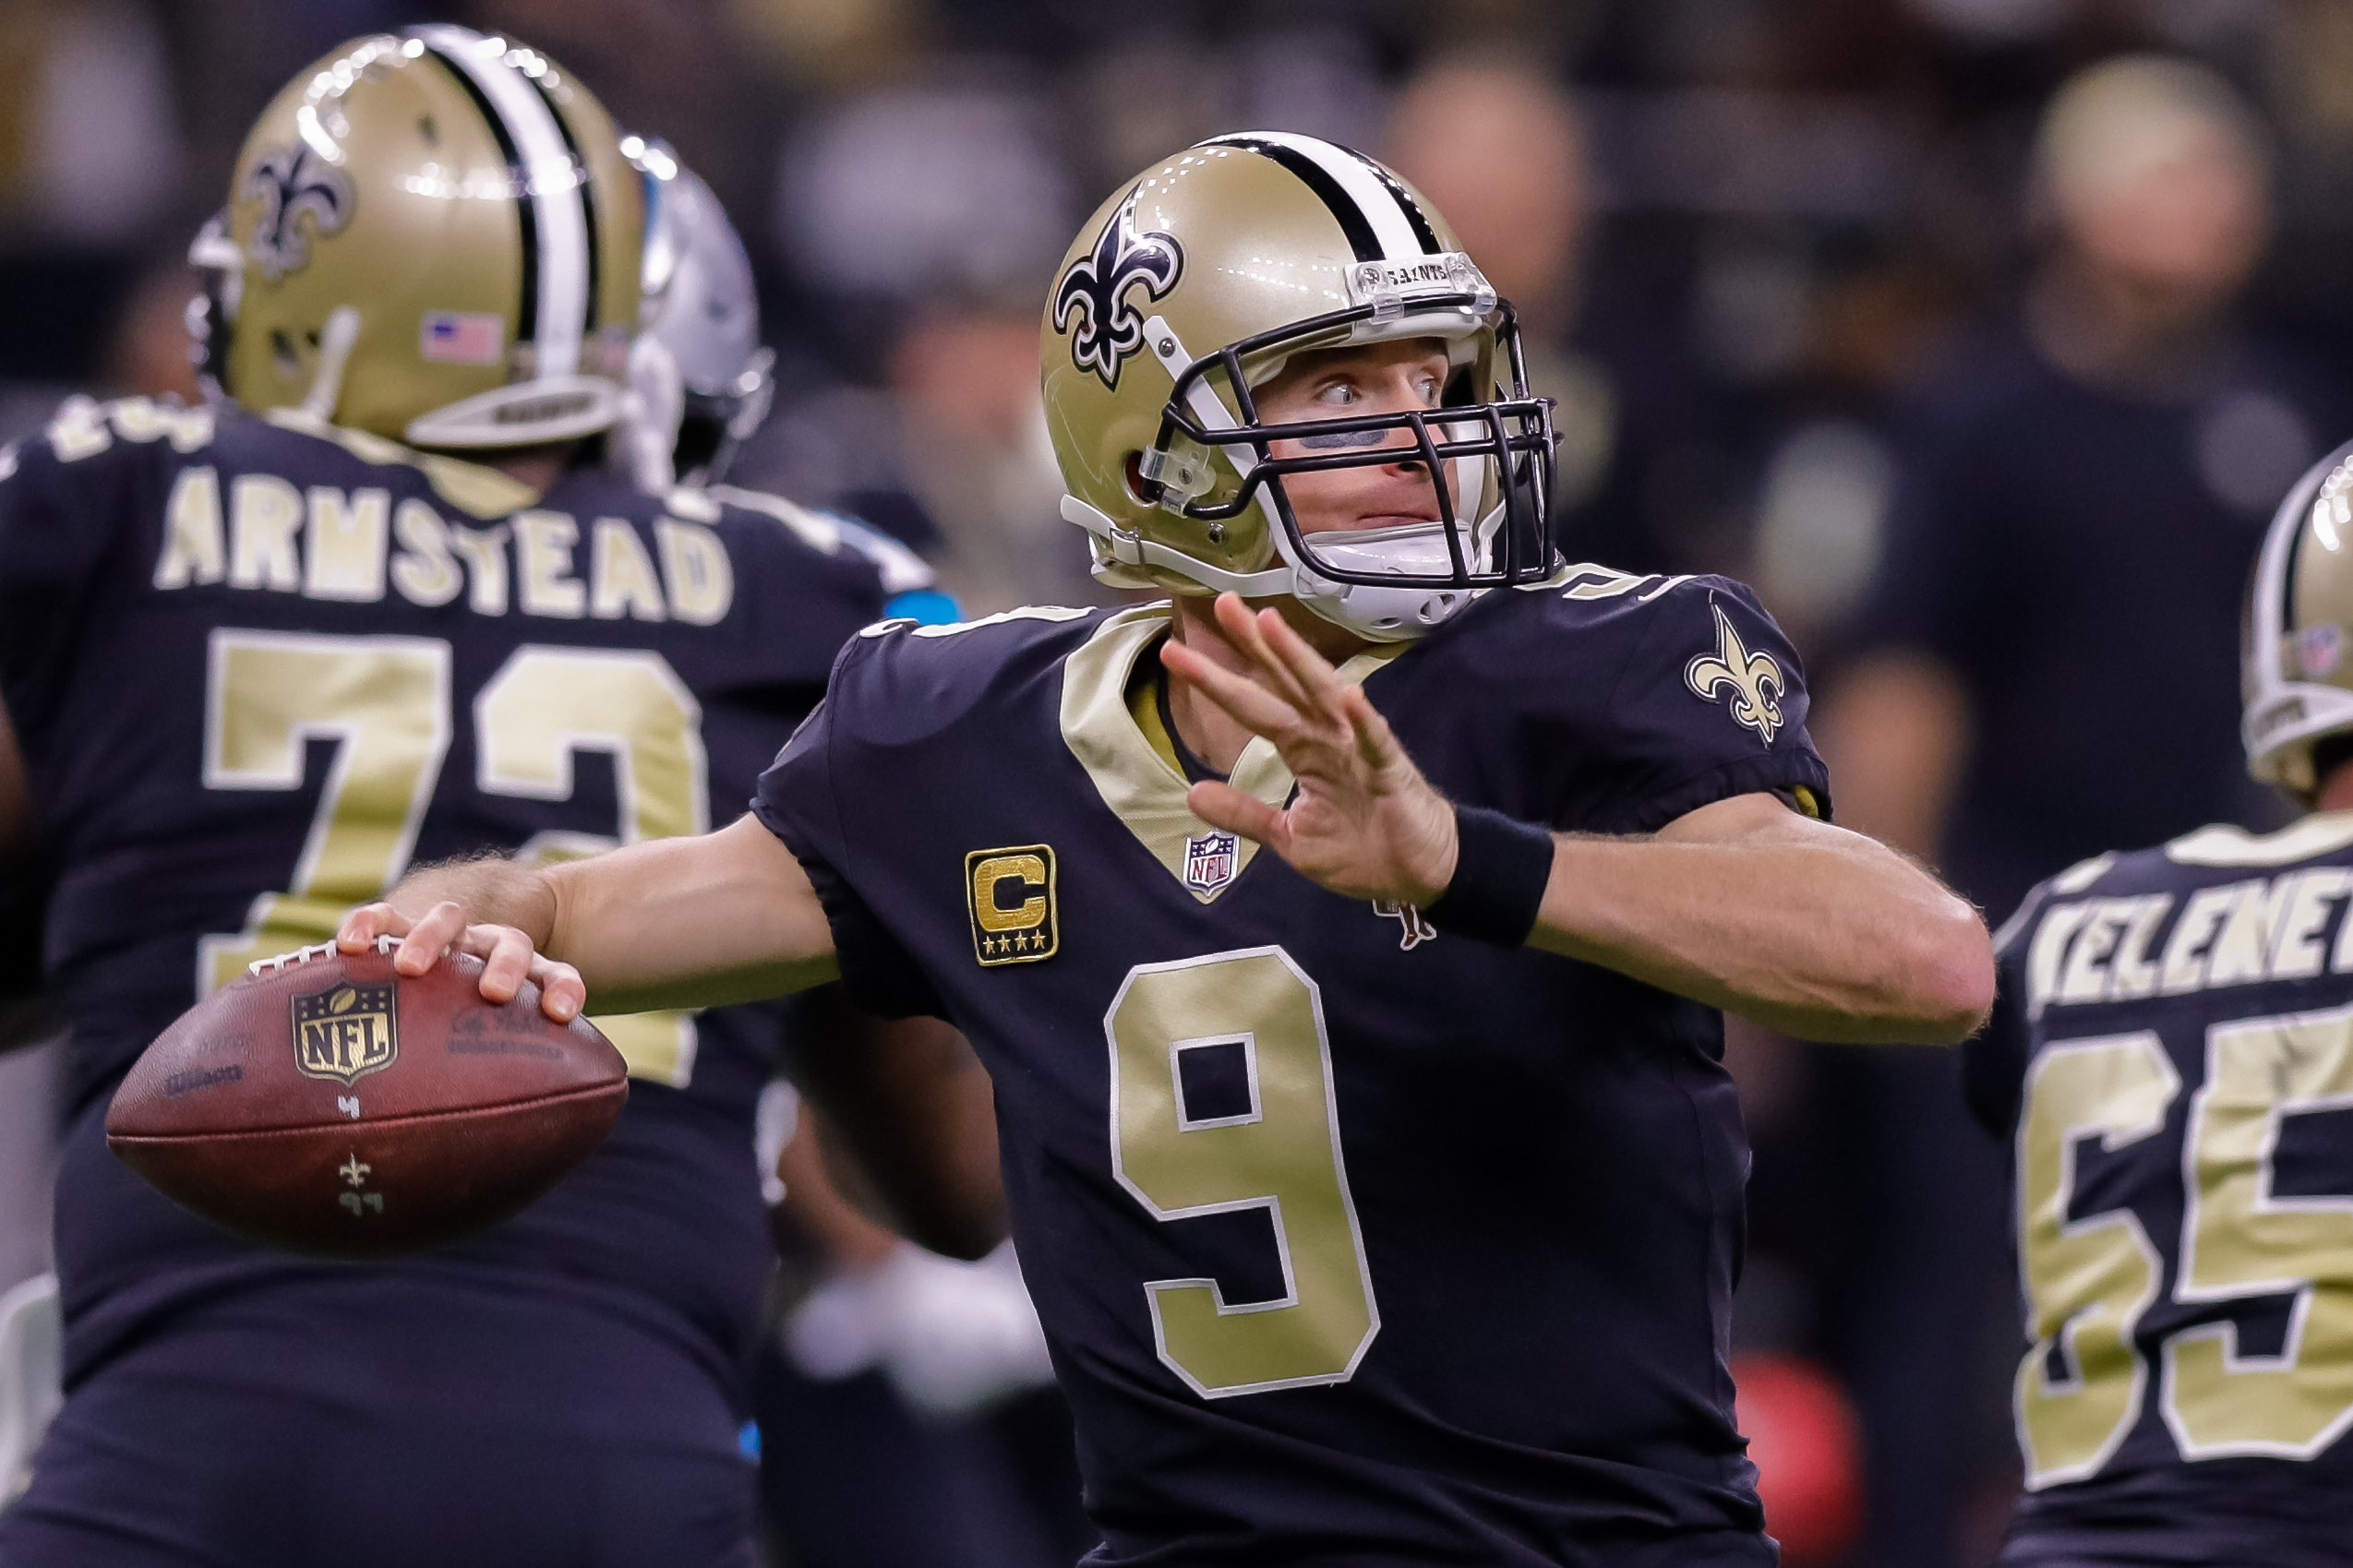 Top 10 Texas High School Quarterbacks Currently In the NFL